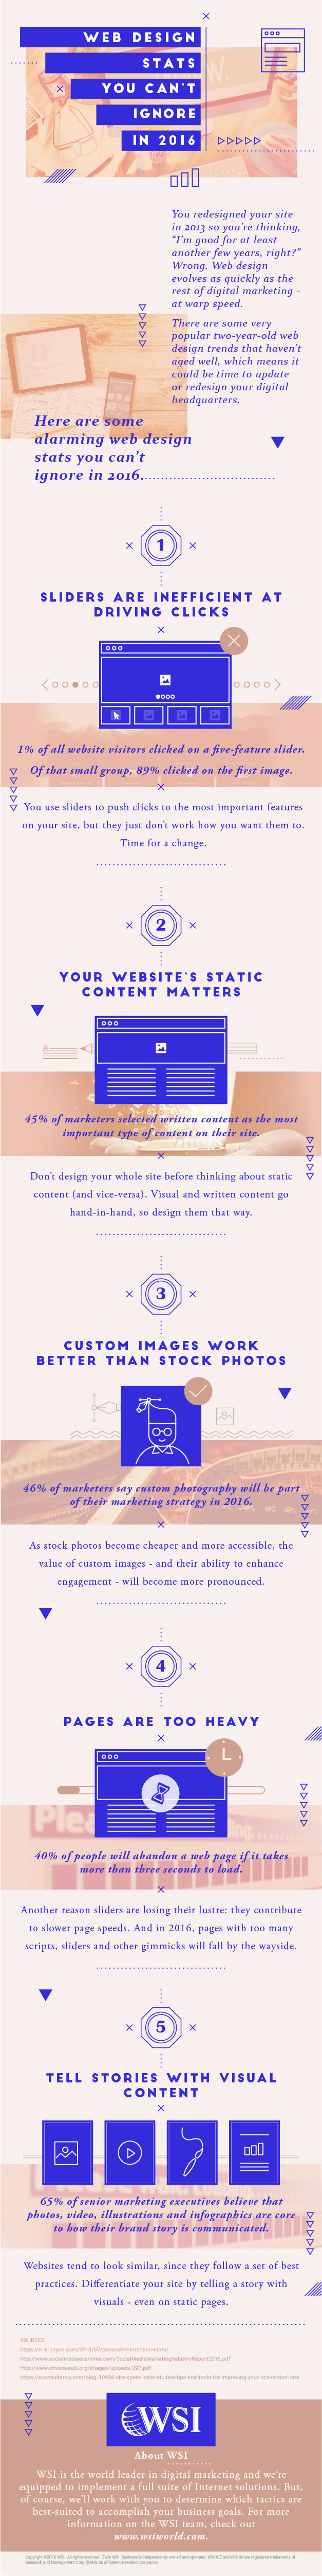 Check out this infographic on 'Web Design State You Can't Ignore in 2016'